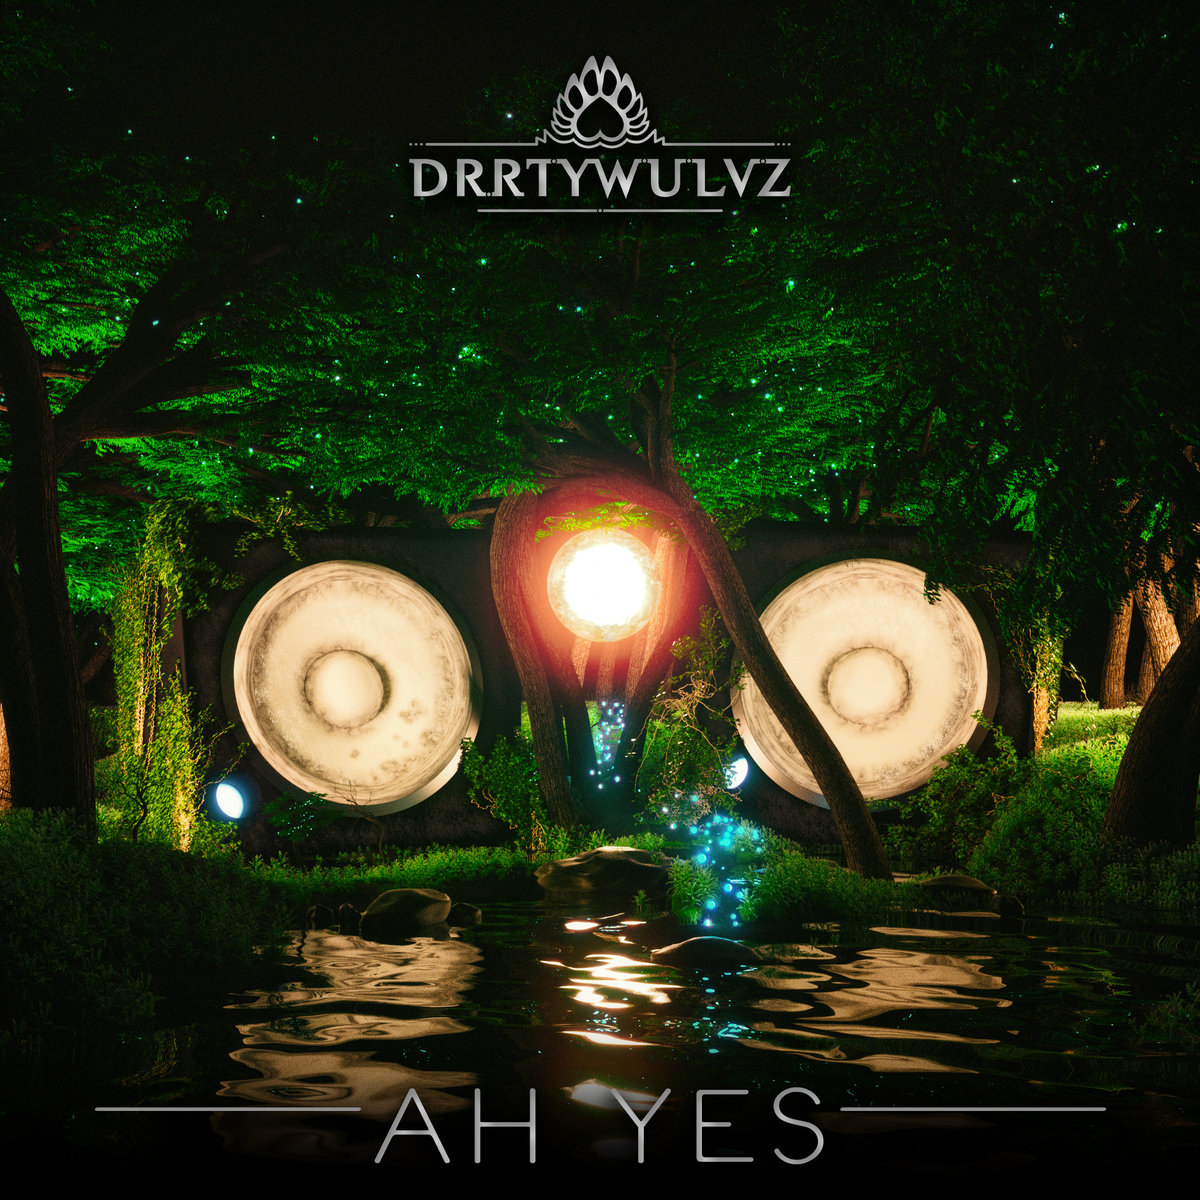 DRRTYWULVZ - Suddenly @ 'Ah Yes' album (bass, drrtywulvz)